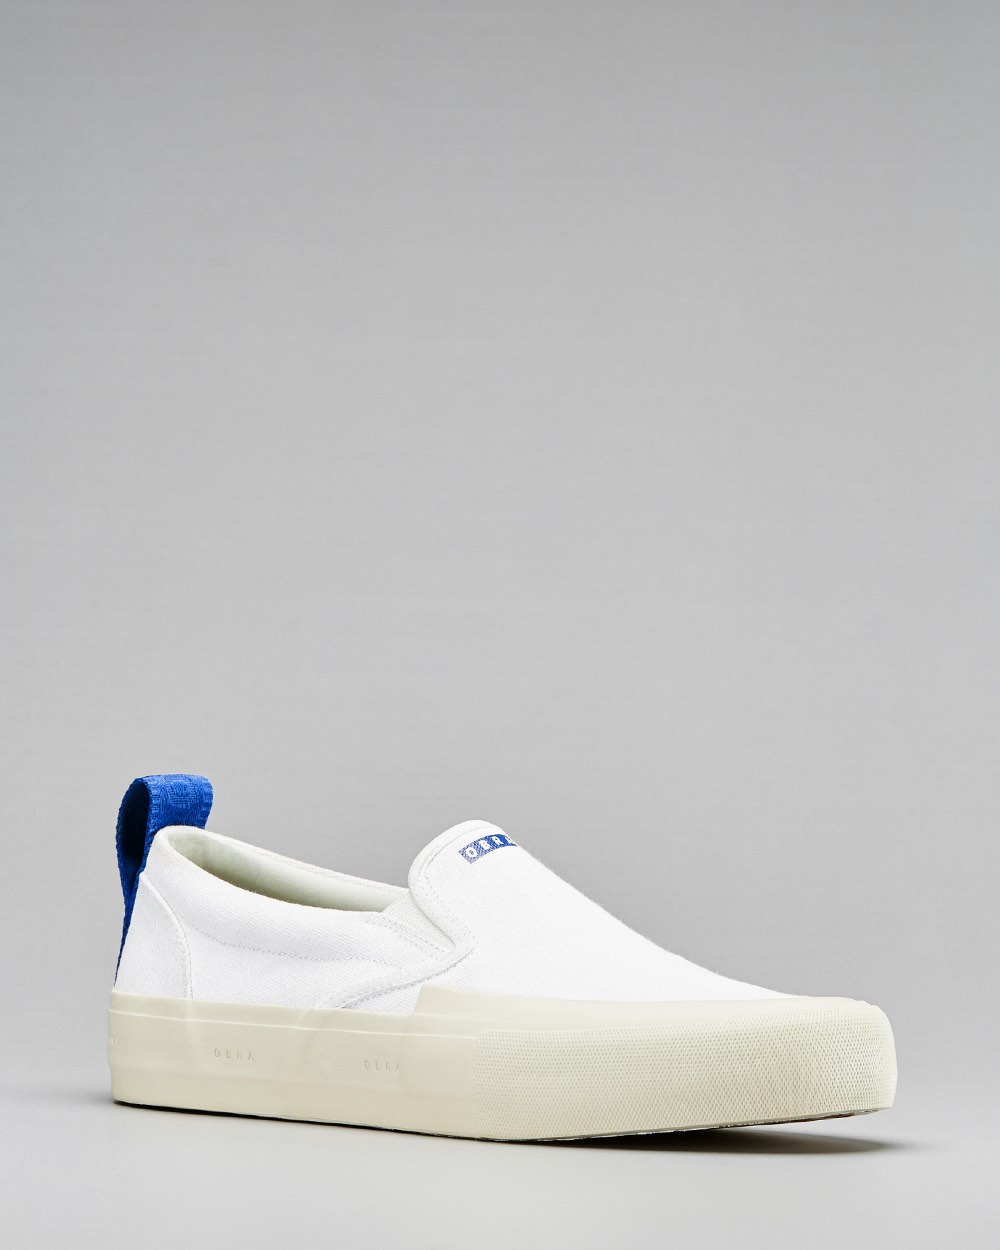 TERRA CANVAS SLIP-ON WRAP TOE <br/>White/Off-White/OBRA Blue